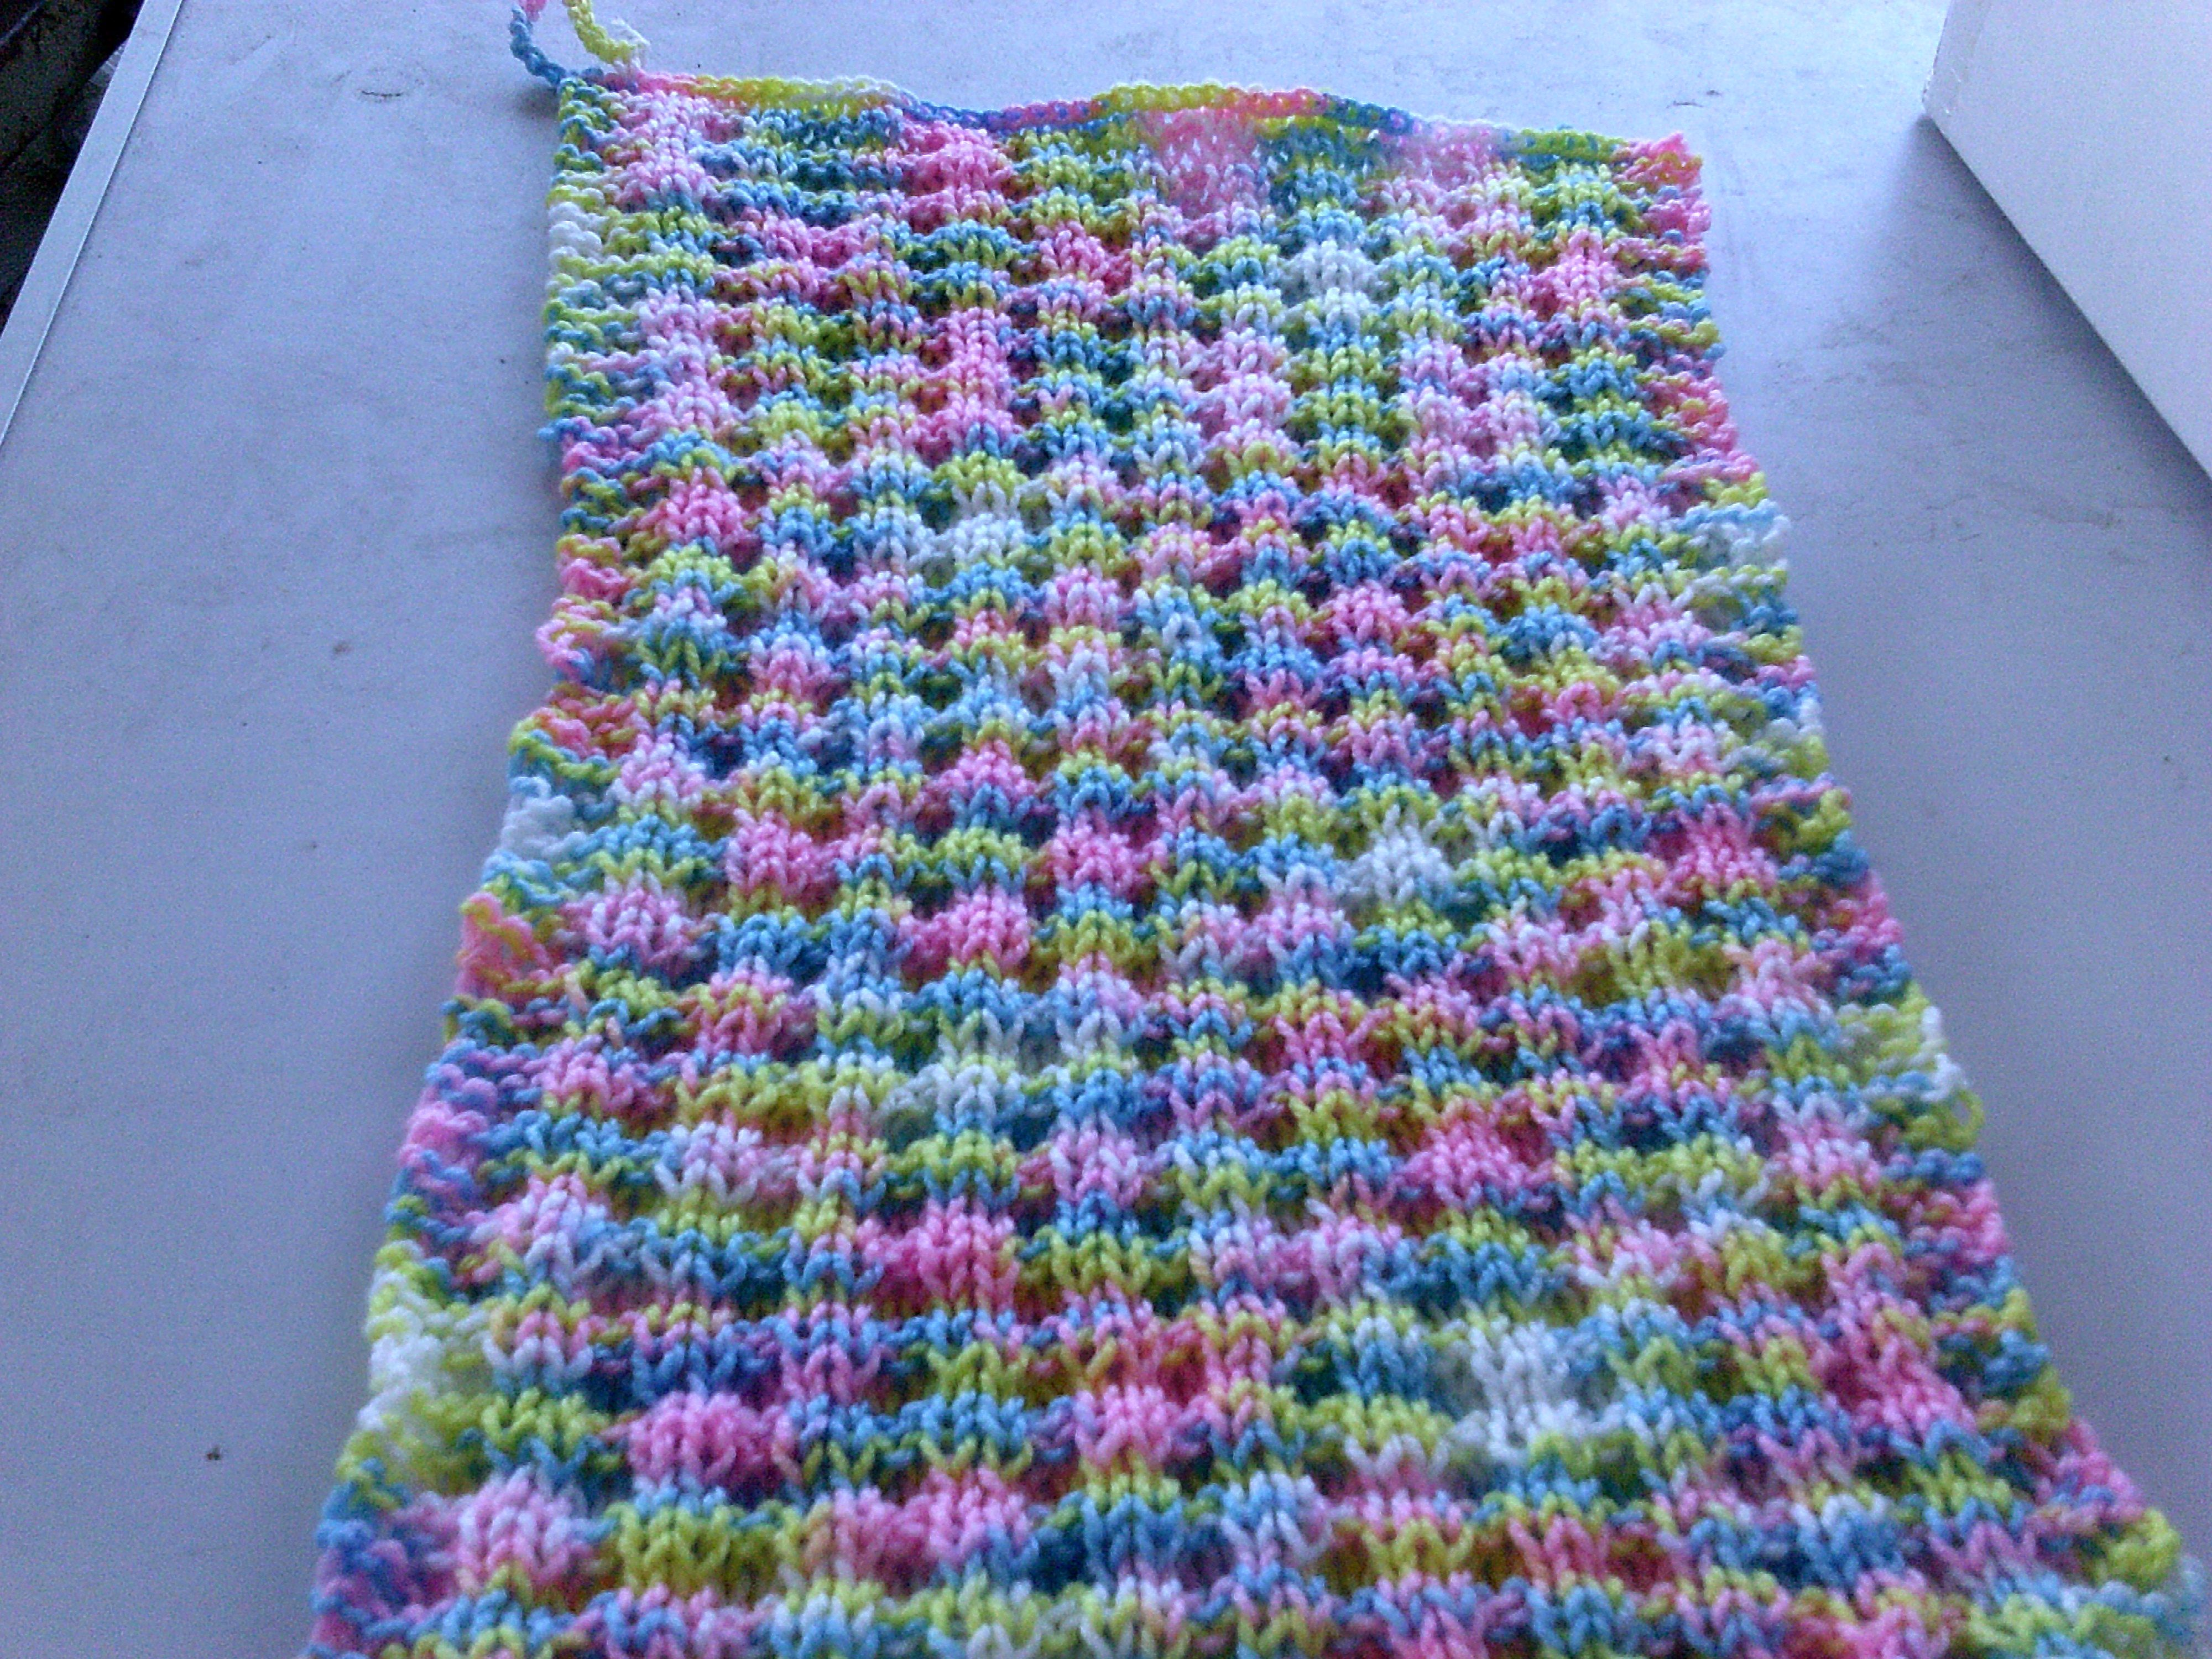 hand knitted basket stitch hand towel, has a loop so it can be hung $7.50 + postage